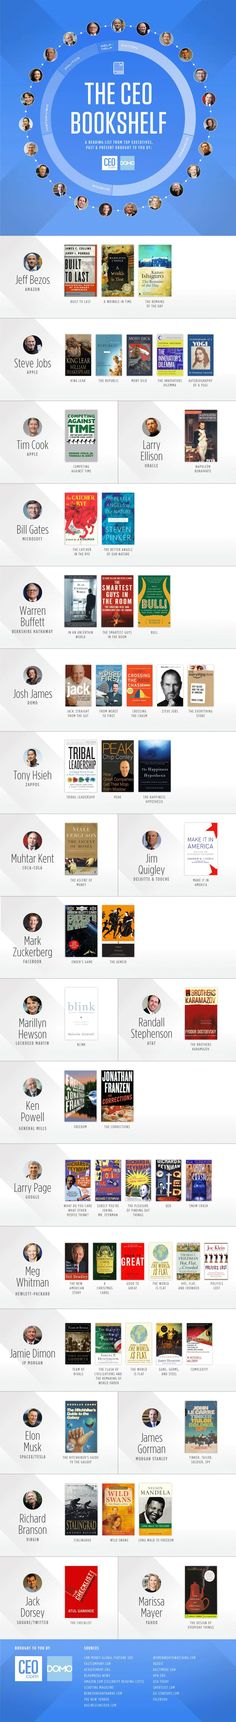 """""""The CEO Bookshelf"""" is the infographiccreated by Domo andCEO.com. Itlists books that influenced 22 most influentialCEOs in the world, past and present.…"""